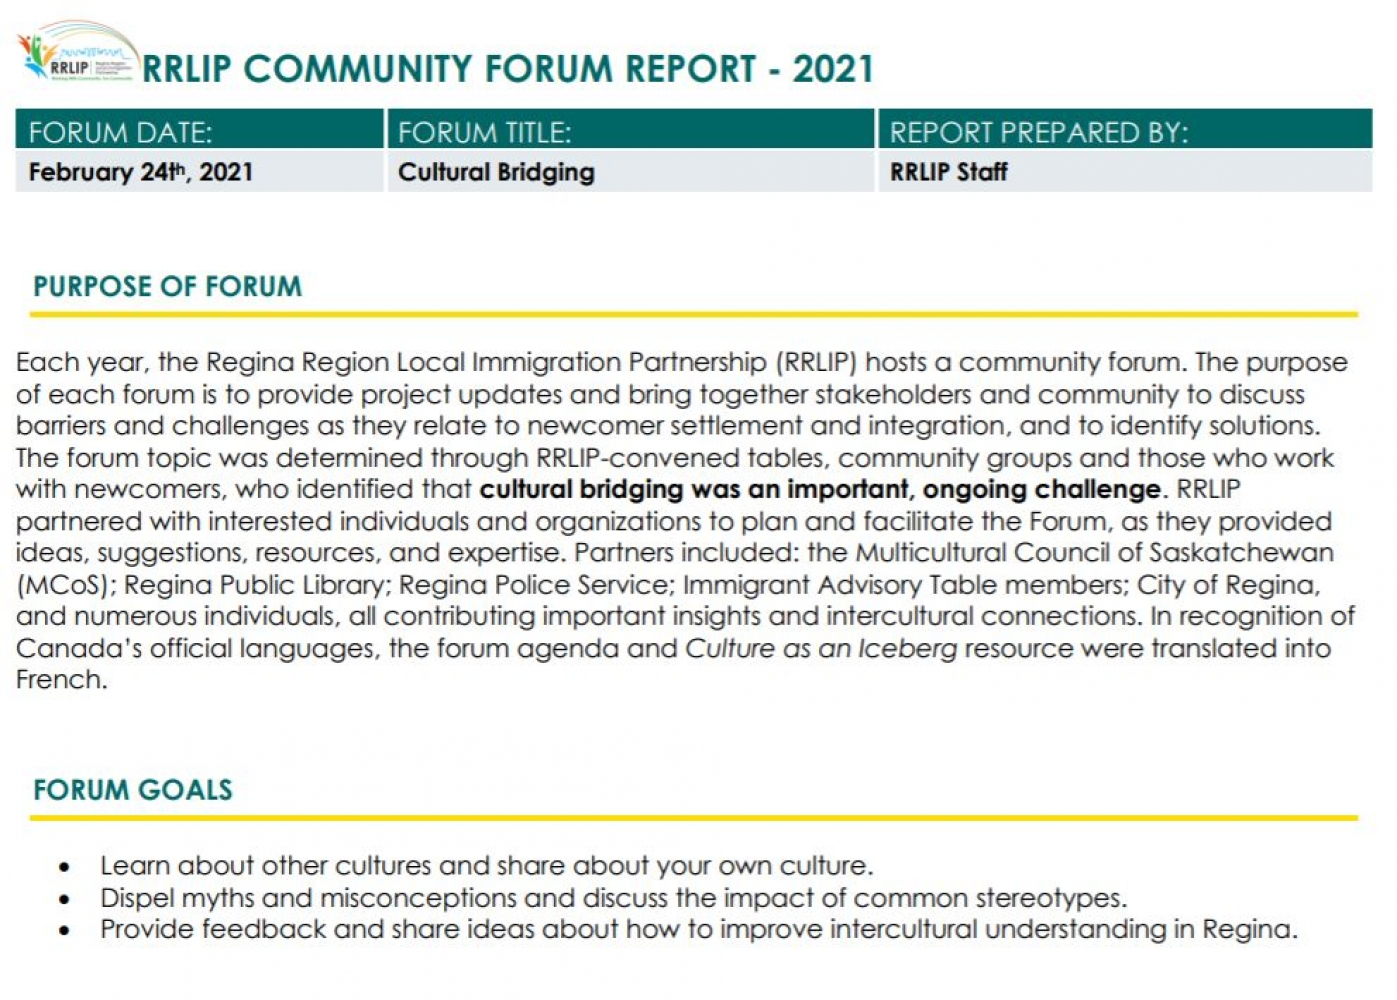 Cultural Bridging Forum Report and Resources - Available now on the RRLIP website!